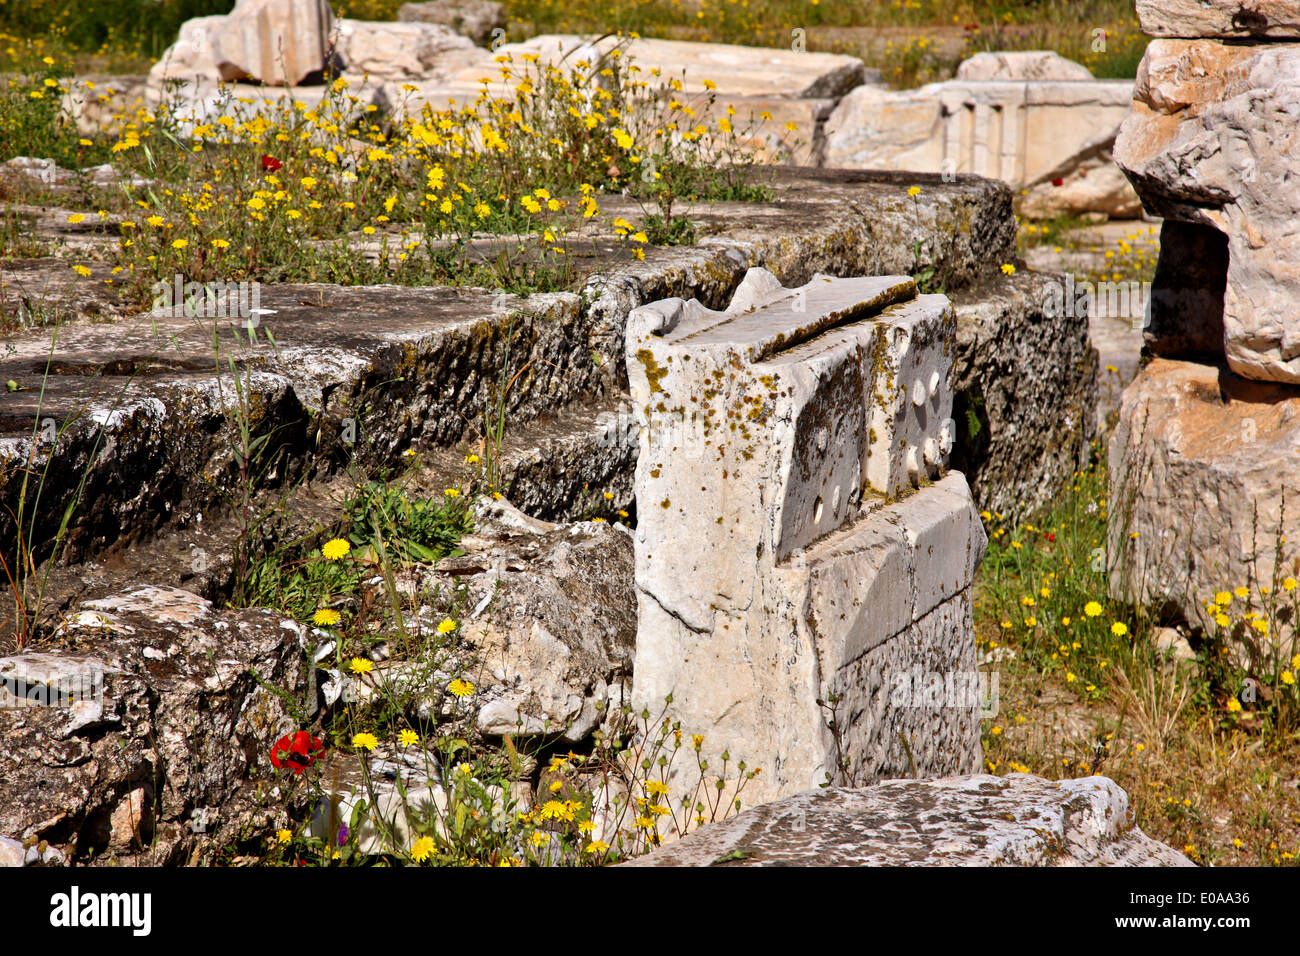 'Detail' from the Great Propylaea at the Archaeological site of Eleusis ('Elefsis' or 'Elefsina'), Attica, Greece - Stock Image